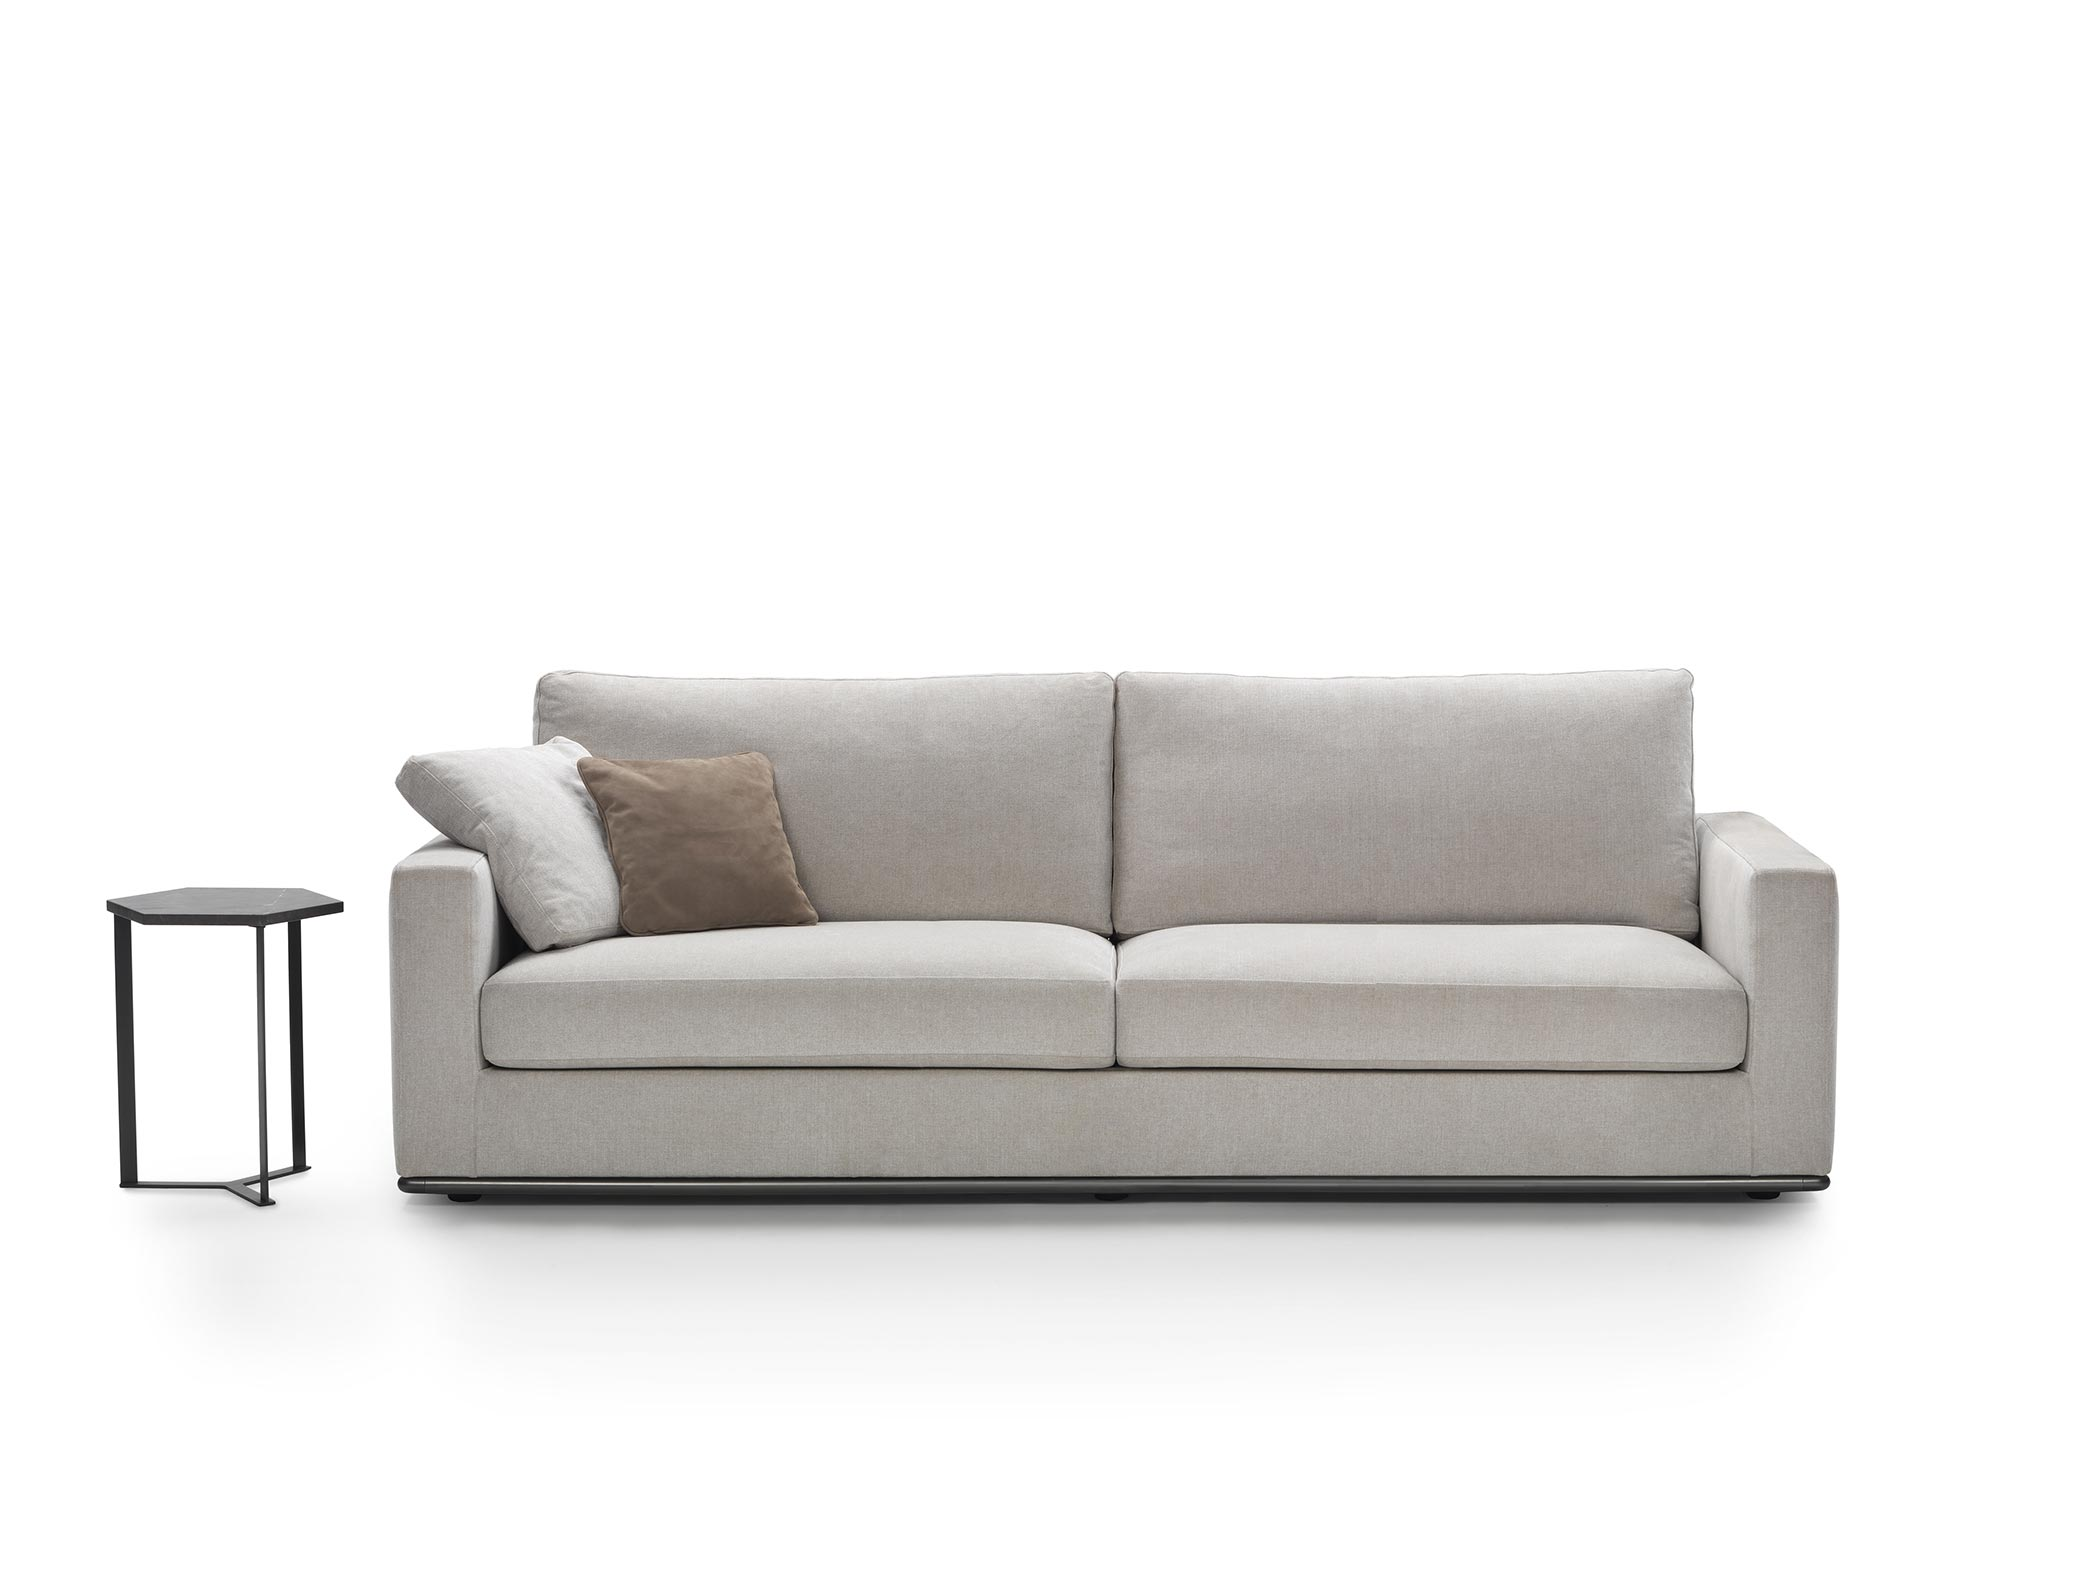 oliver sofa sofaworks empire armchair gallery marelli living